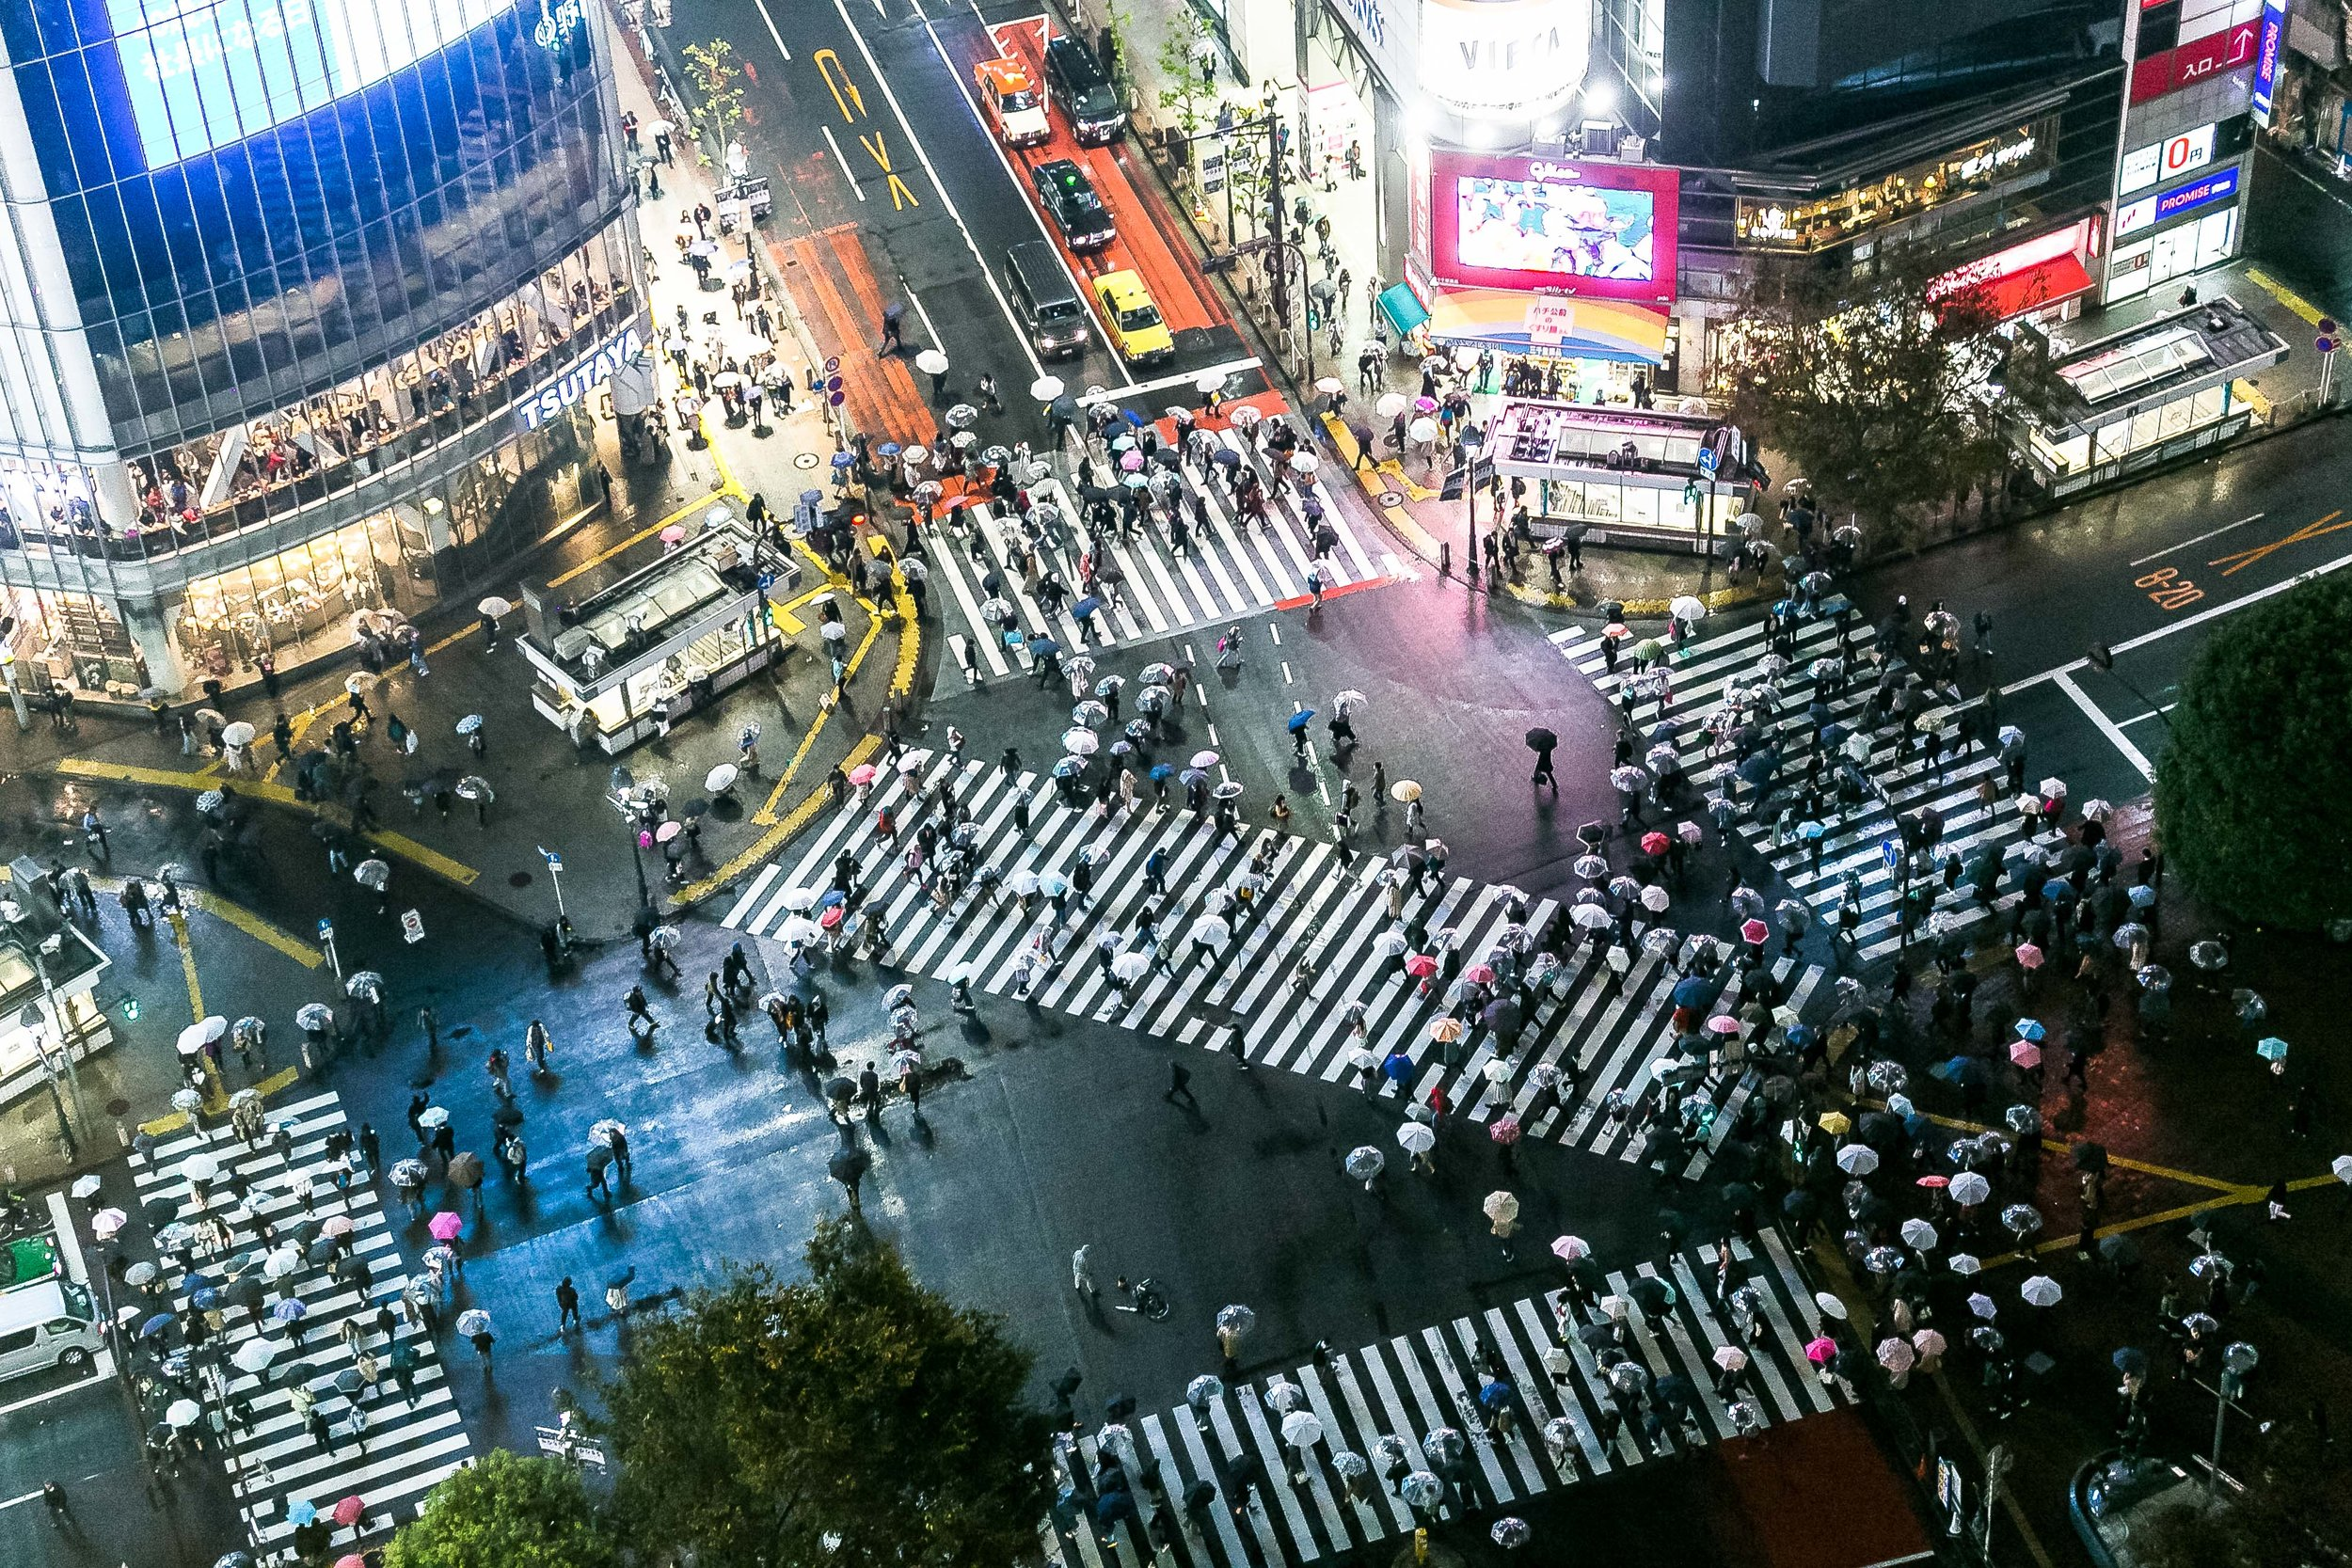 Shibuya Crossing from above  |  Tokyo, Japan